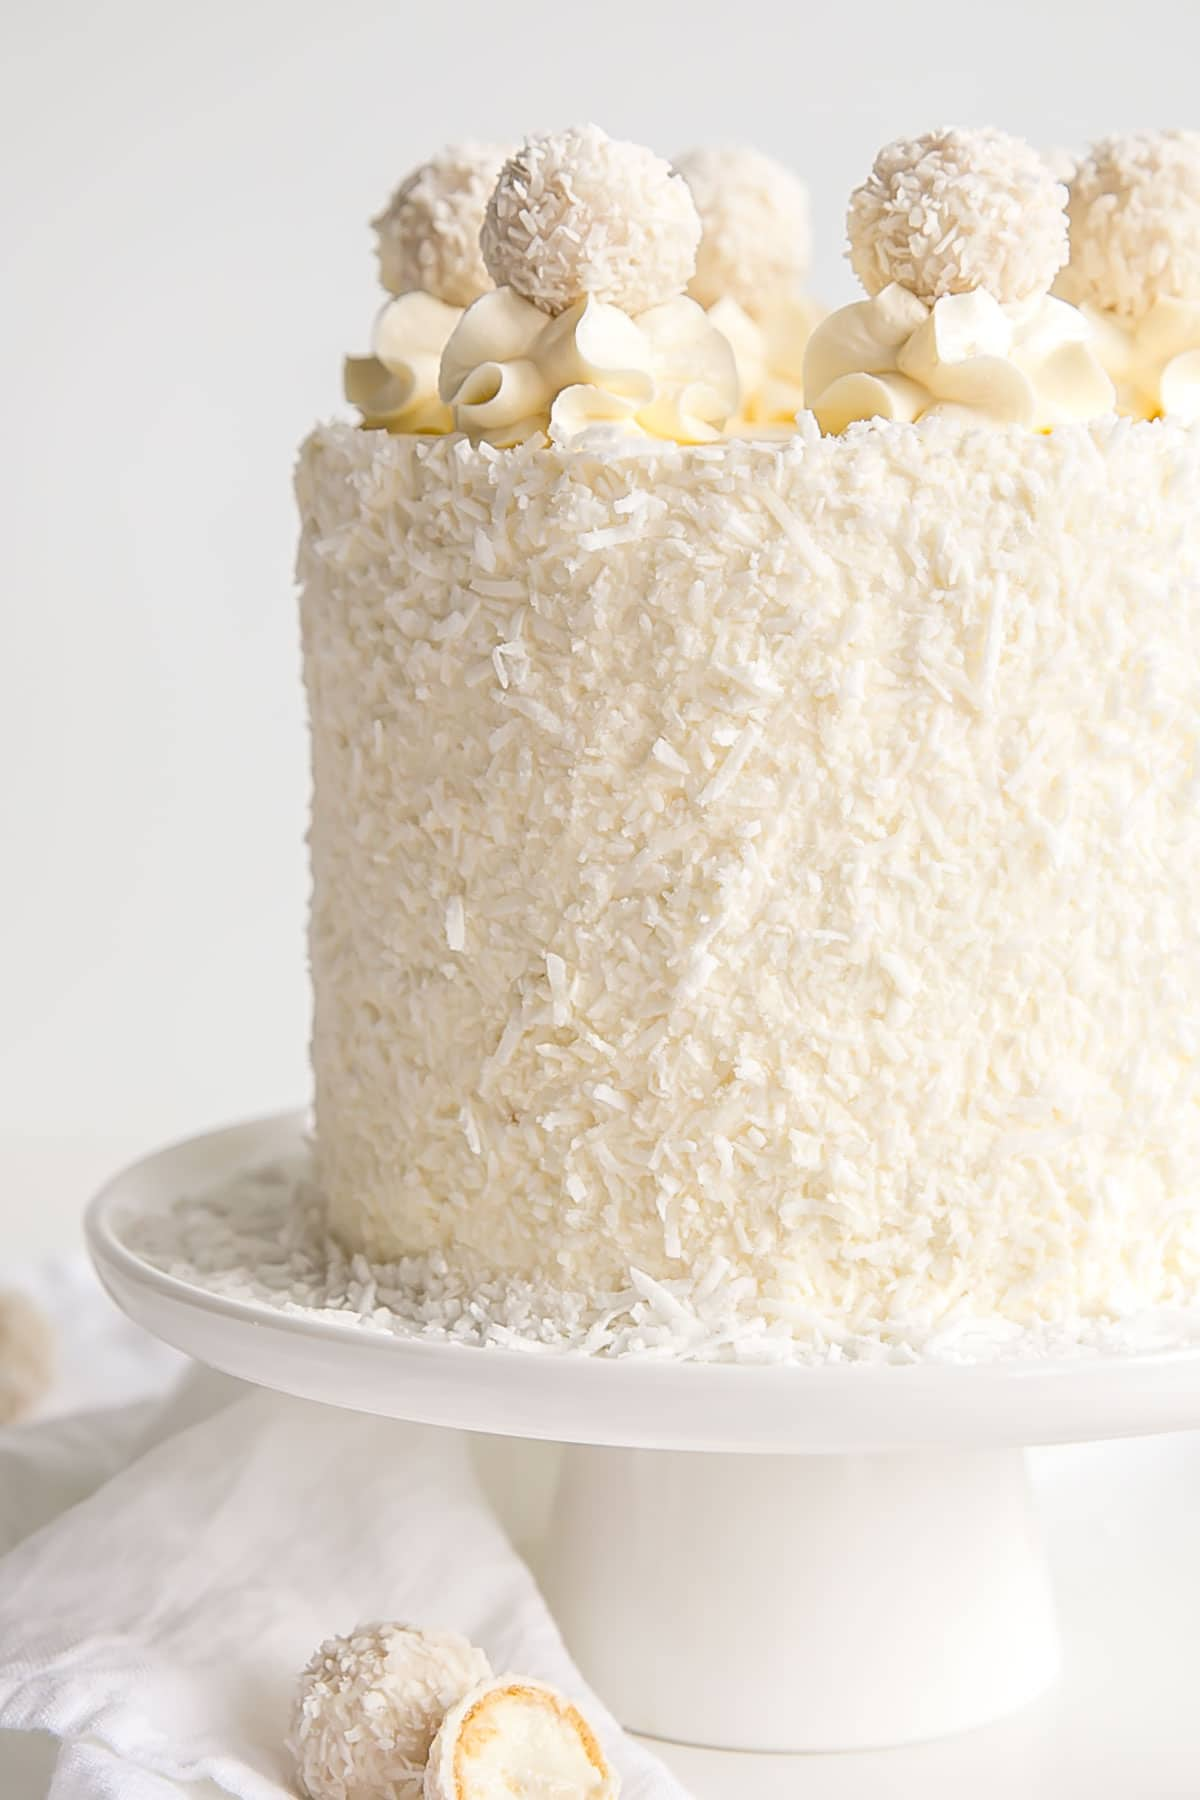 Close up of a coconut almond cake with Raffaello's on top.